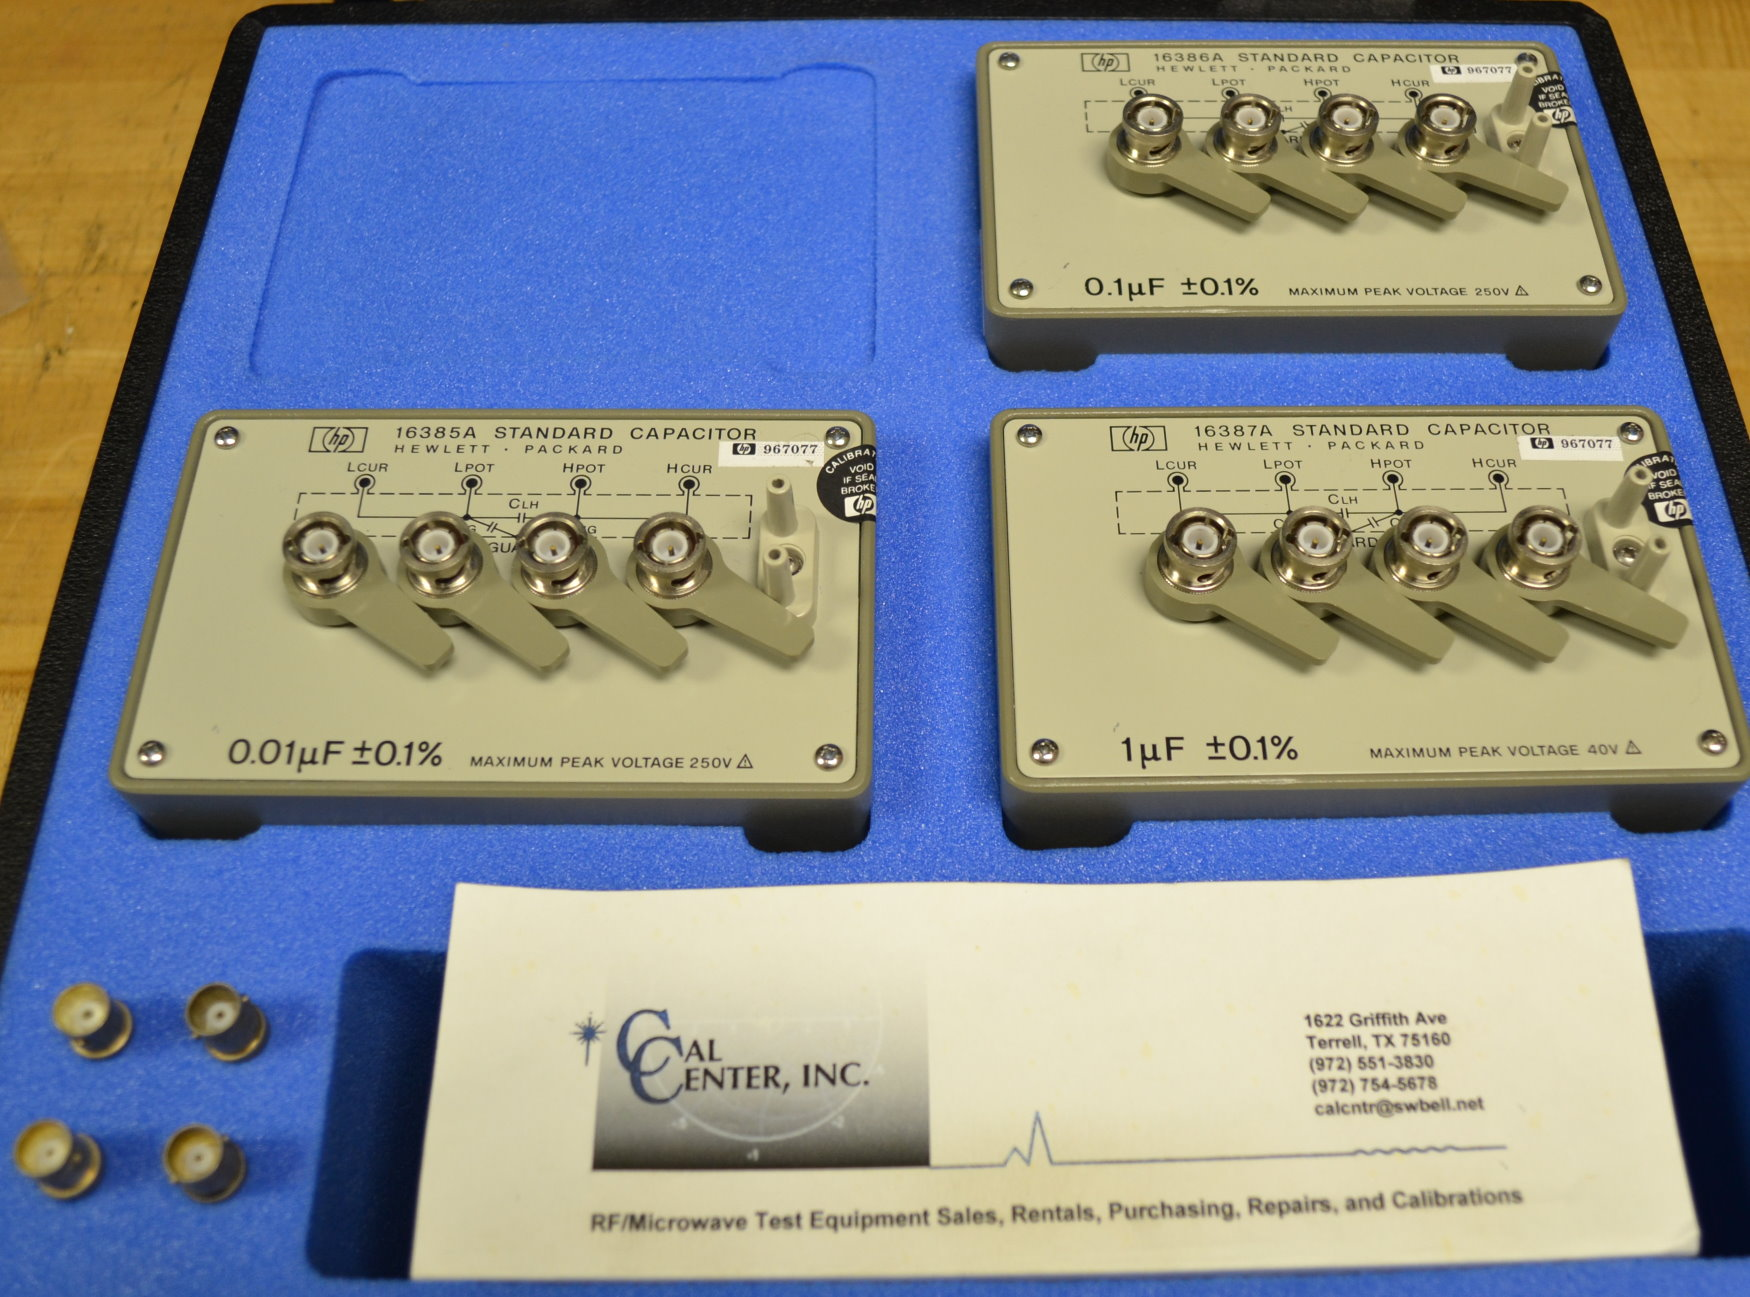 Keysight 16380C Capacitance Standard Set